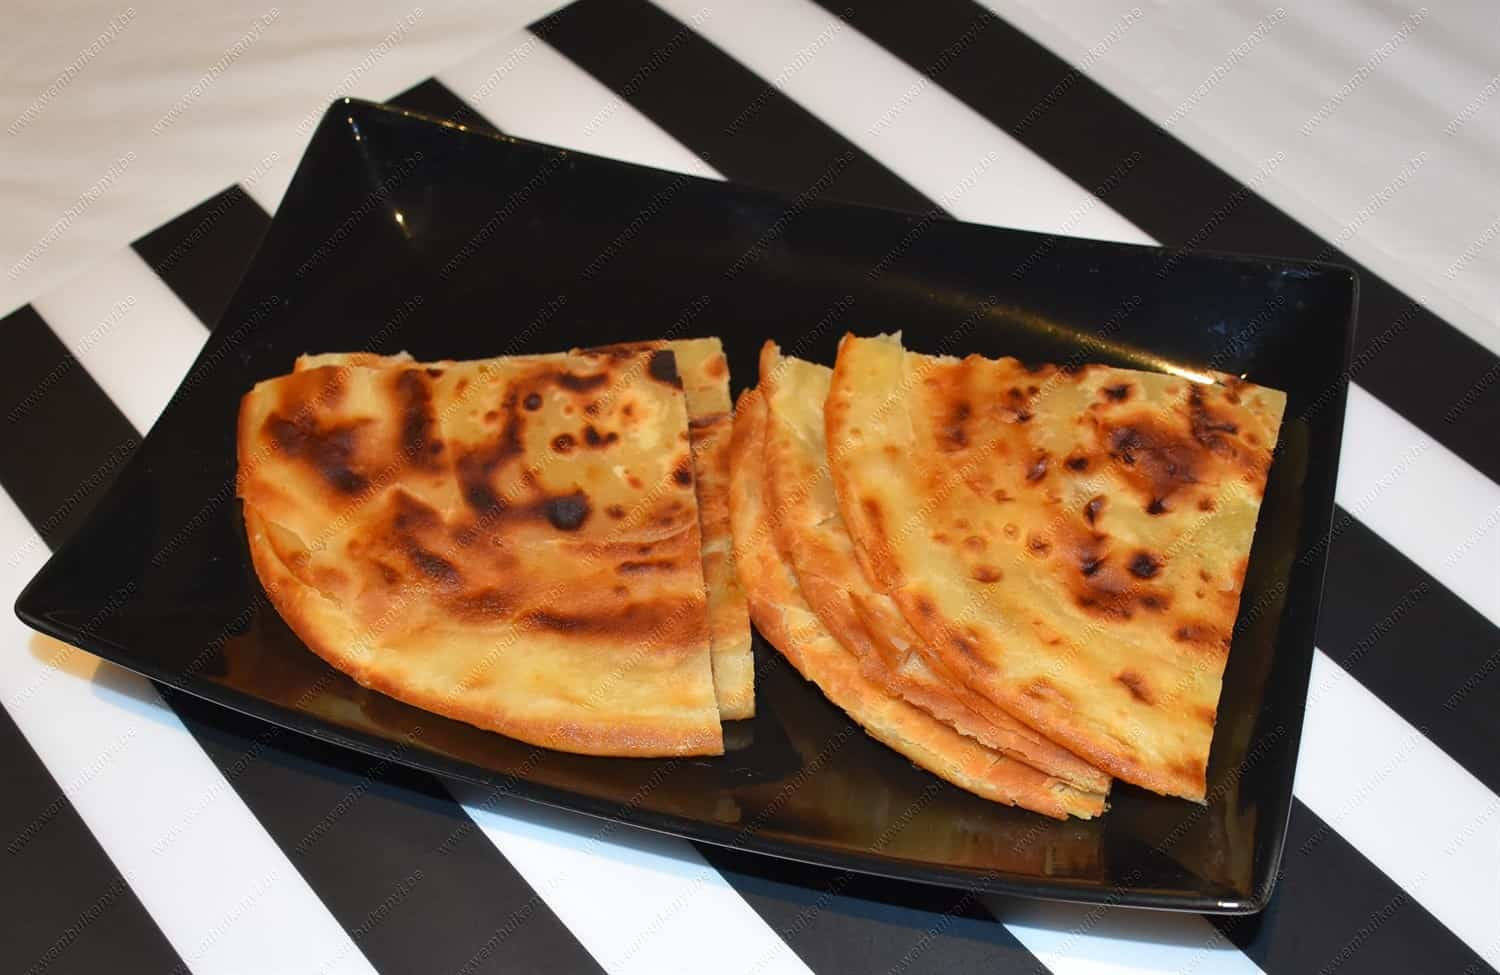 How to Make Layered and Soft Chapati